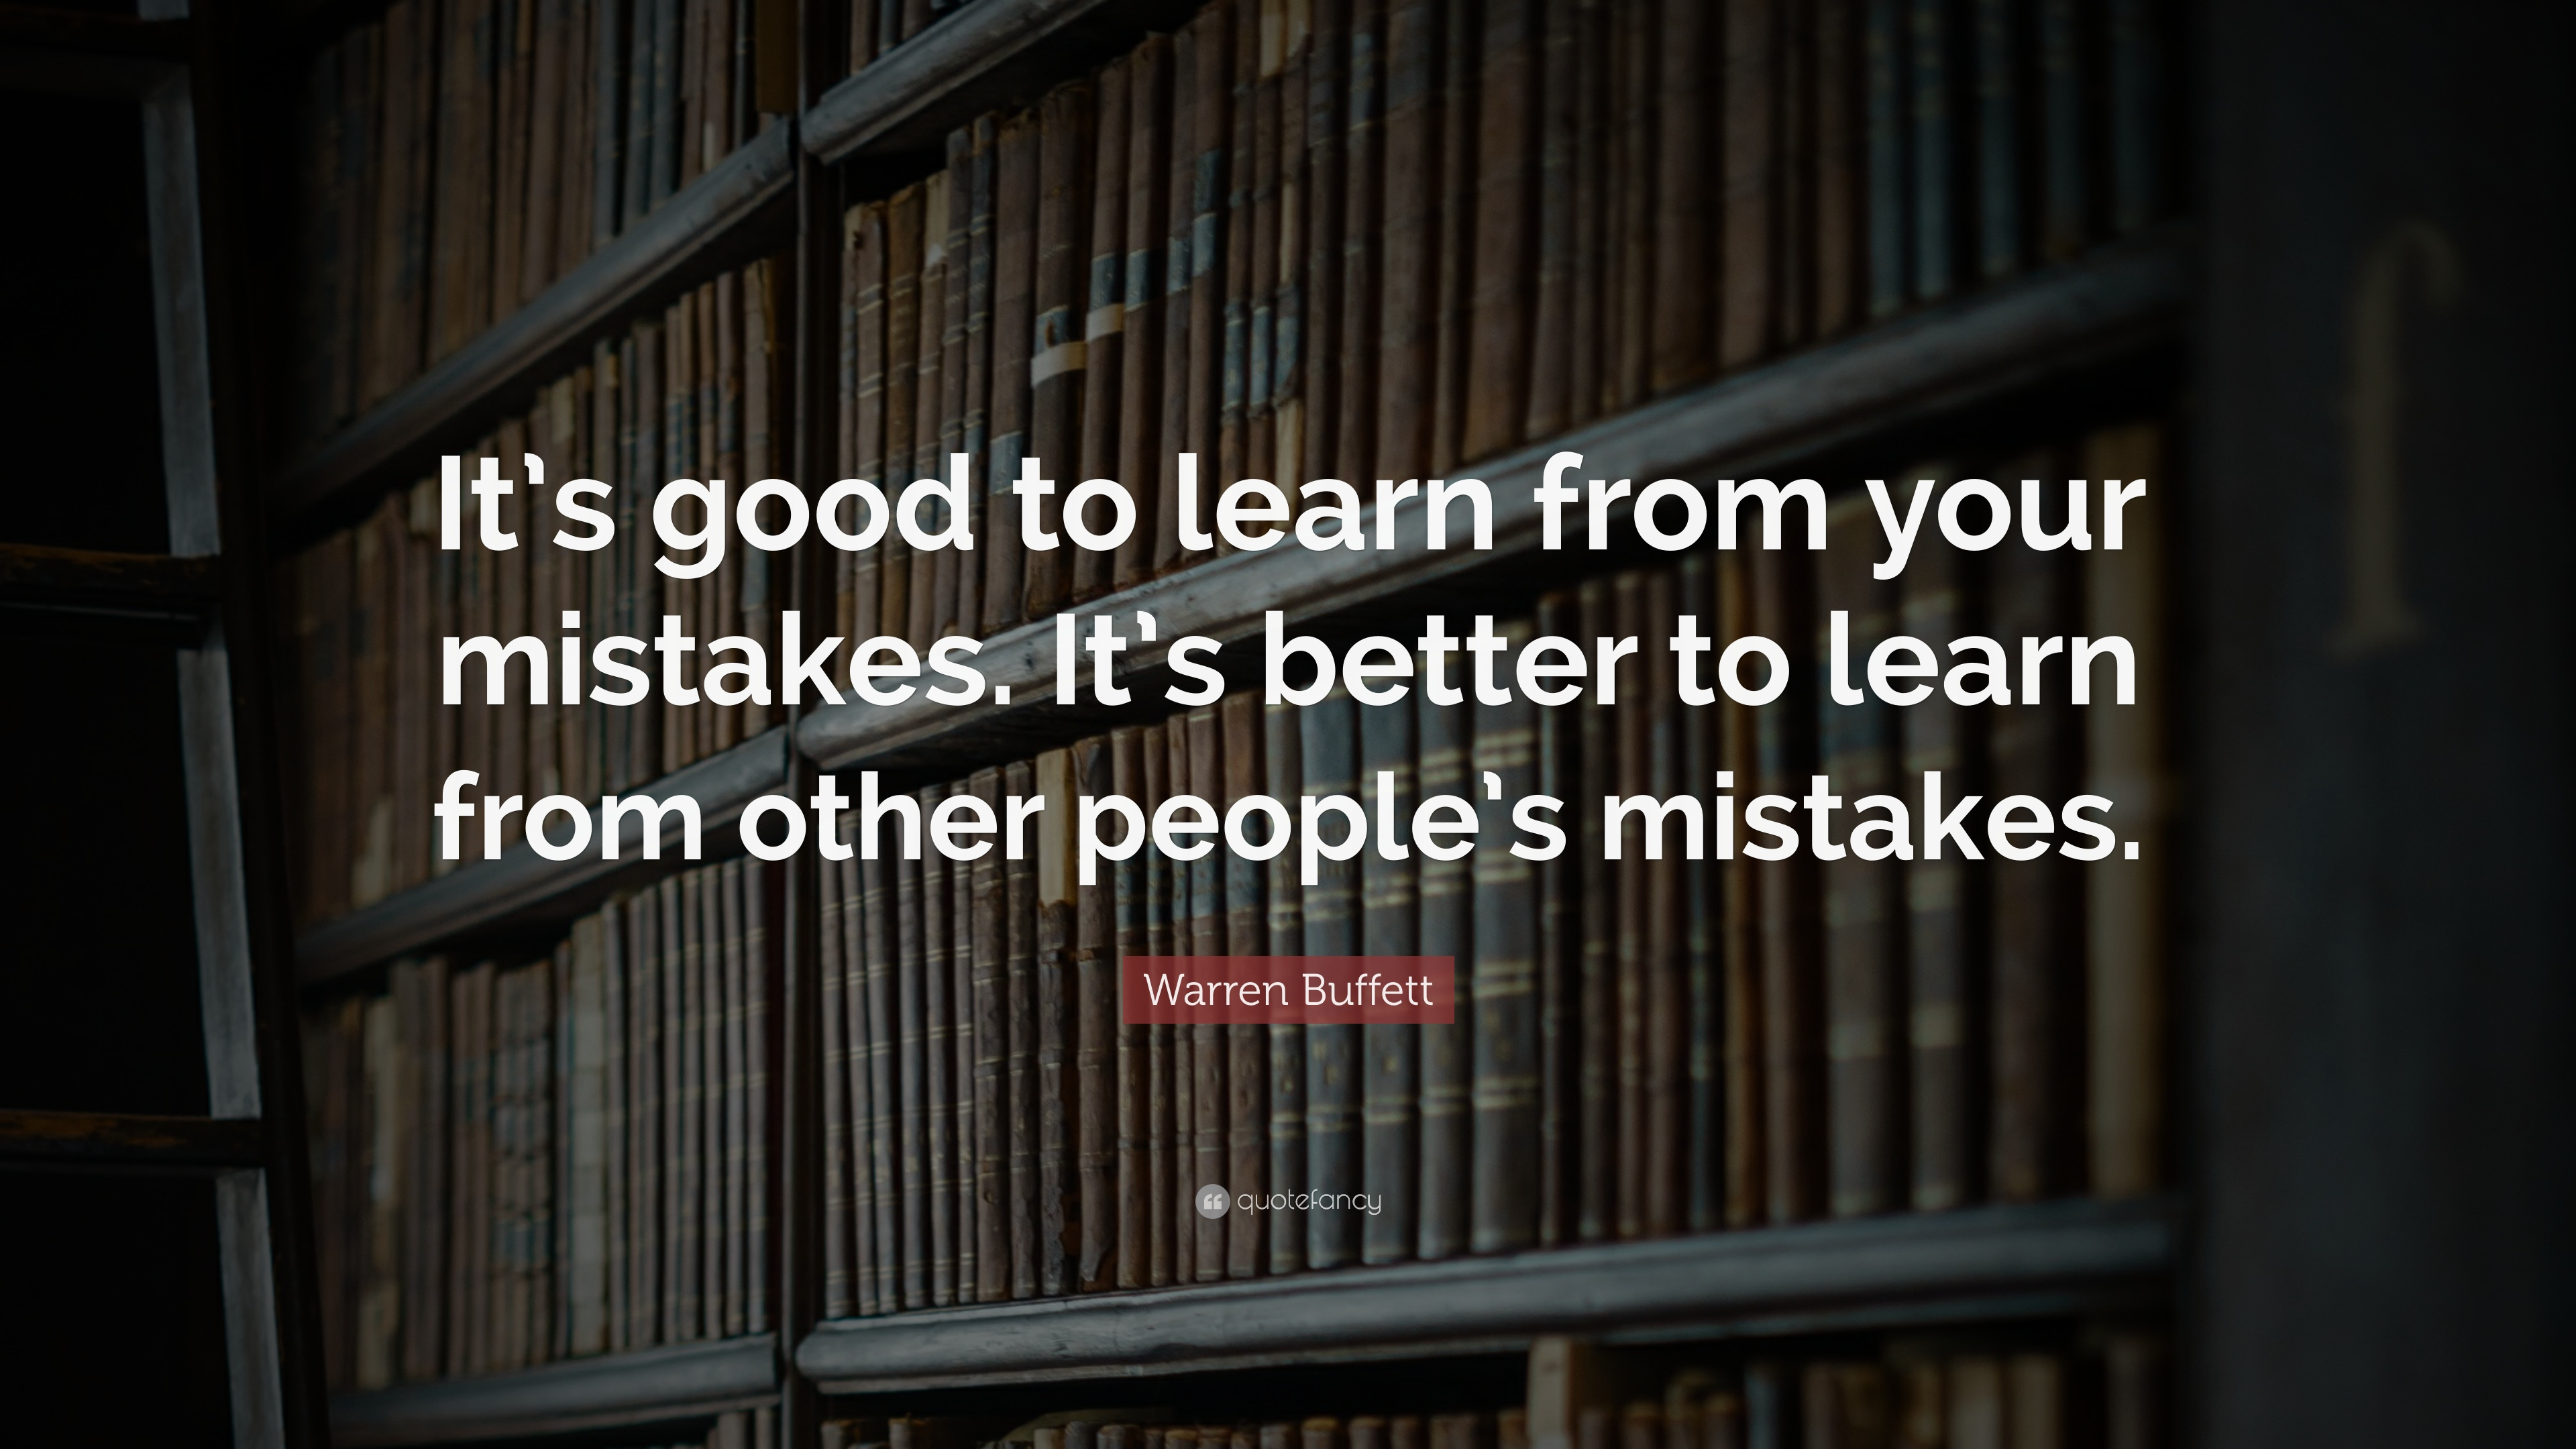 Mistake Quotes: U201cItu0027s Good To Learn From Your Mistakes. Itu0027s Better To Learn